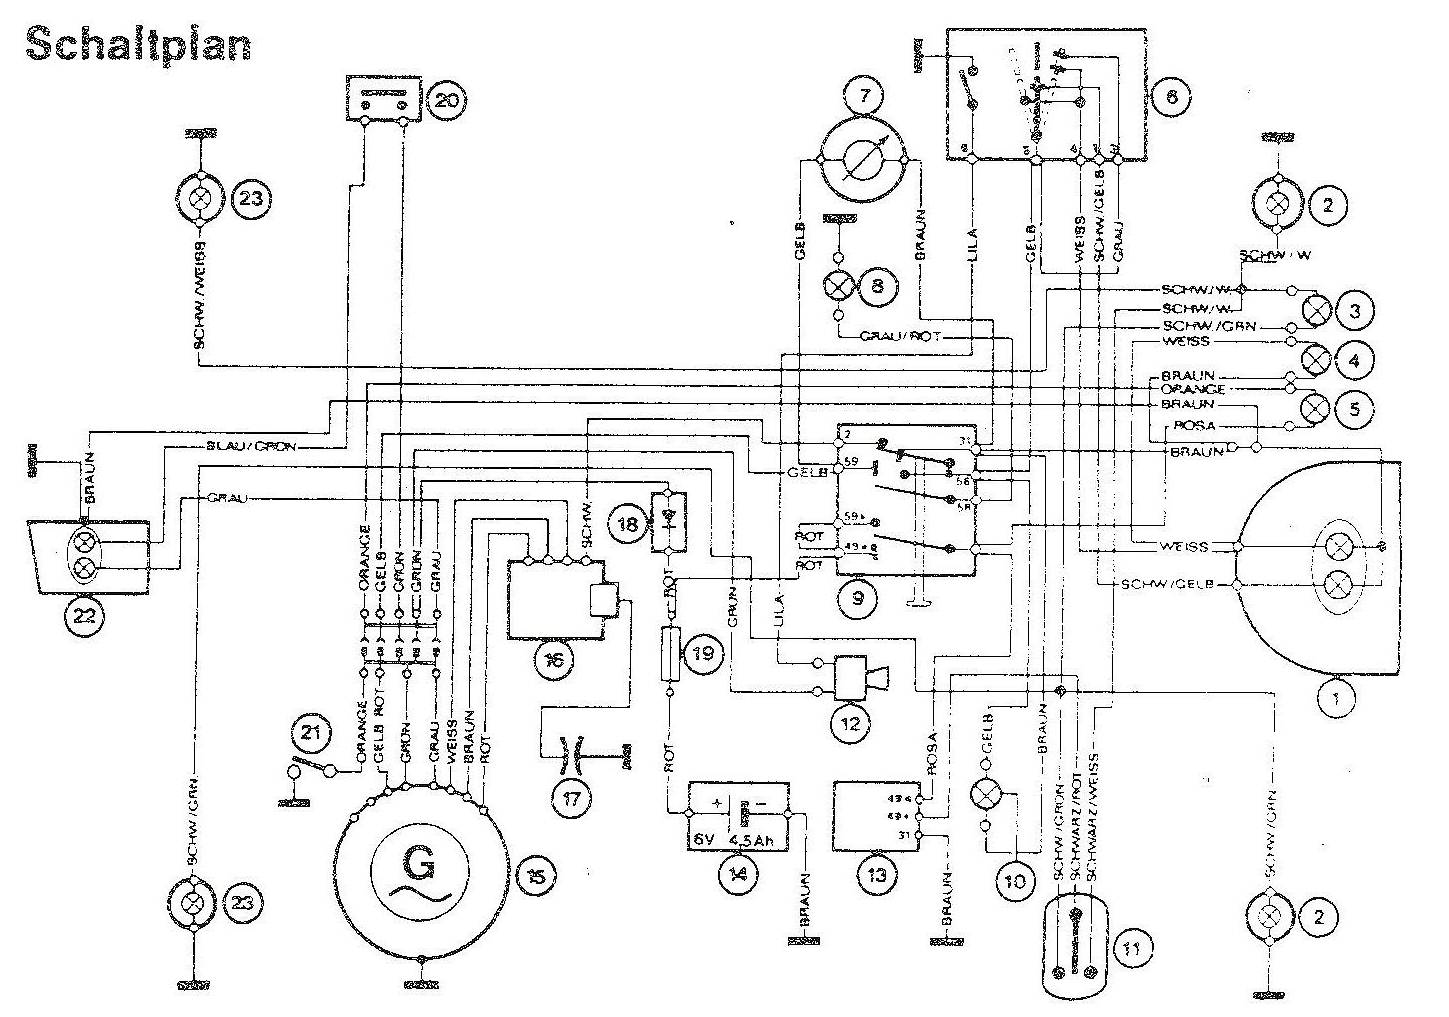 puch maxi wiring diagram newport free engine image for 1991 volvo 940 stereo 2003 harley sportster bank angle sensor location